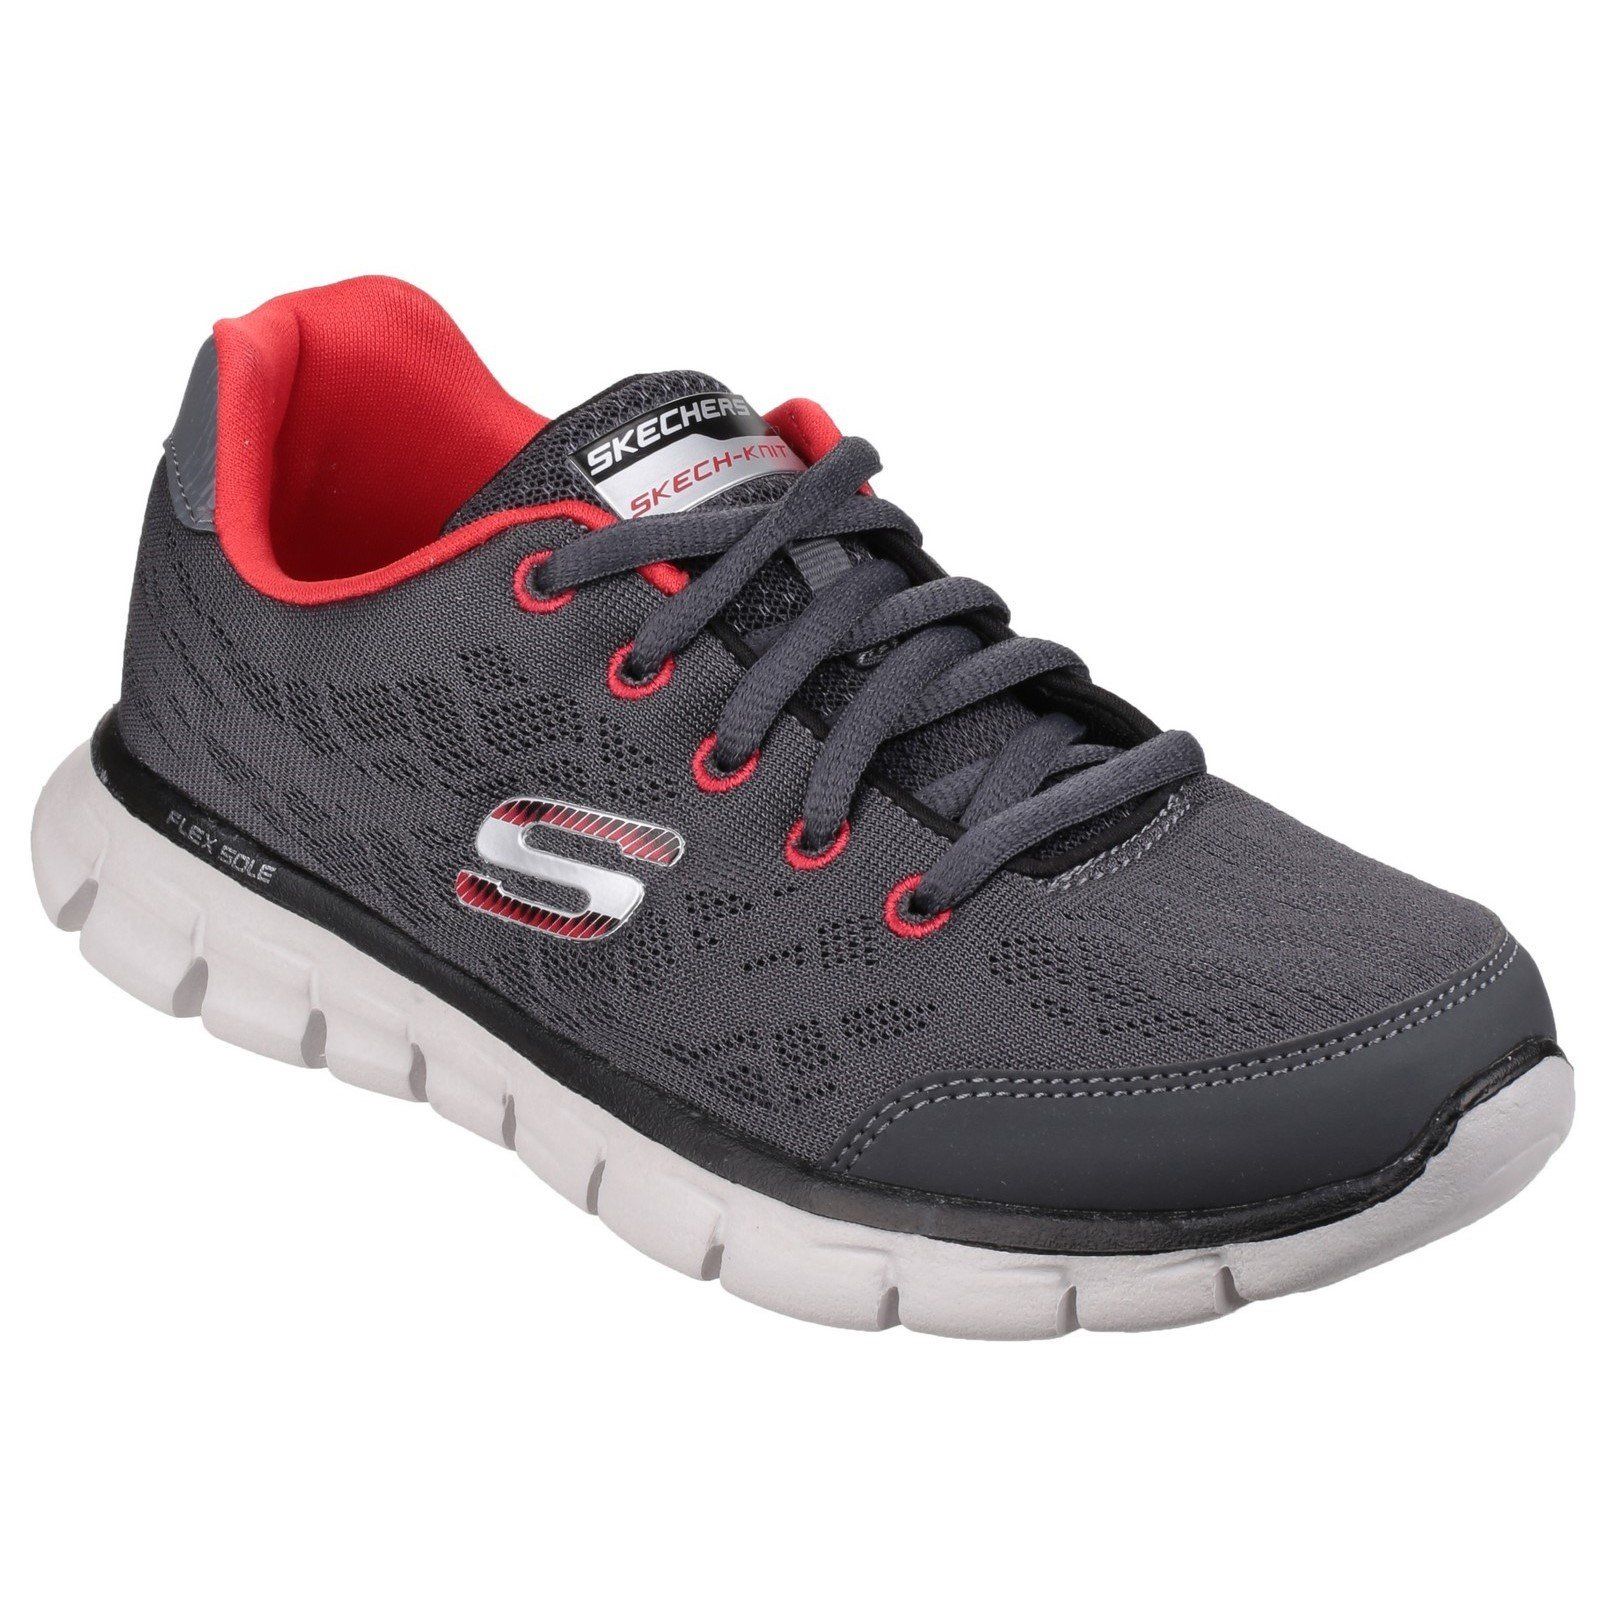 Skechers Kid's Synergy Fine Tune Lace up Trainer Multicolor 23918 - Grey/Red 6